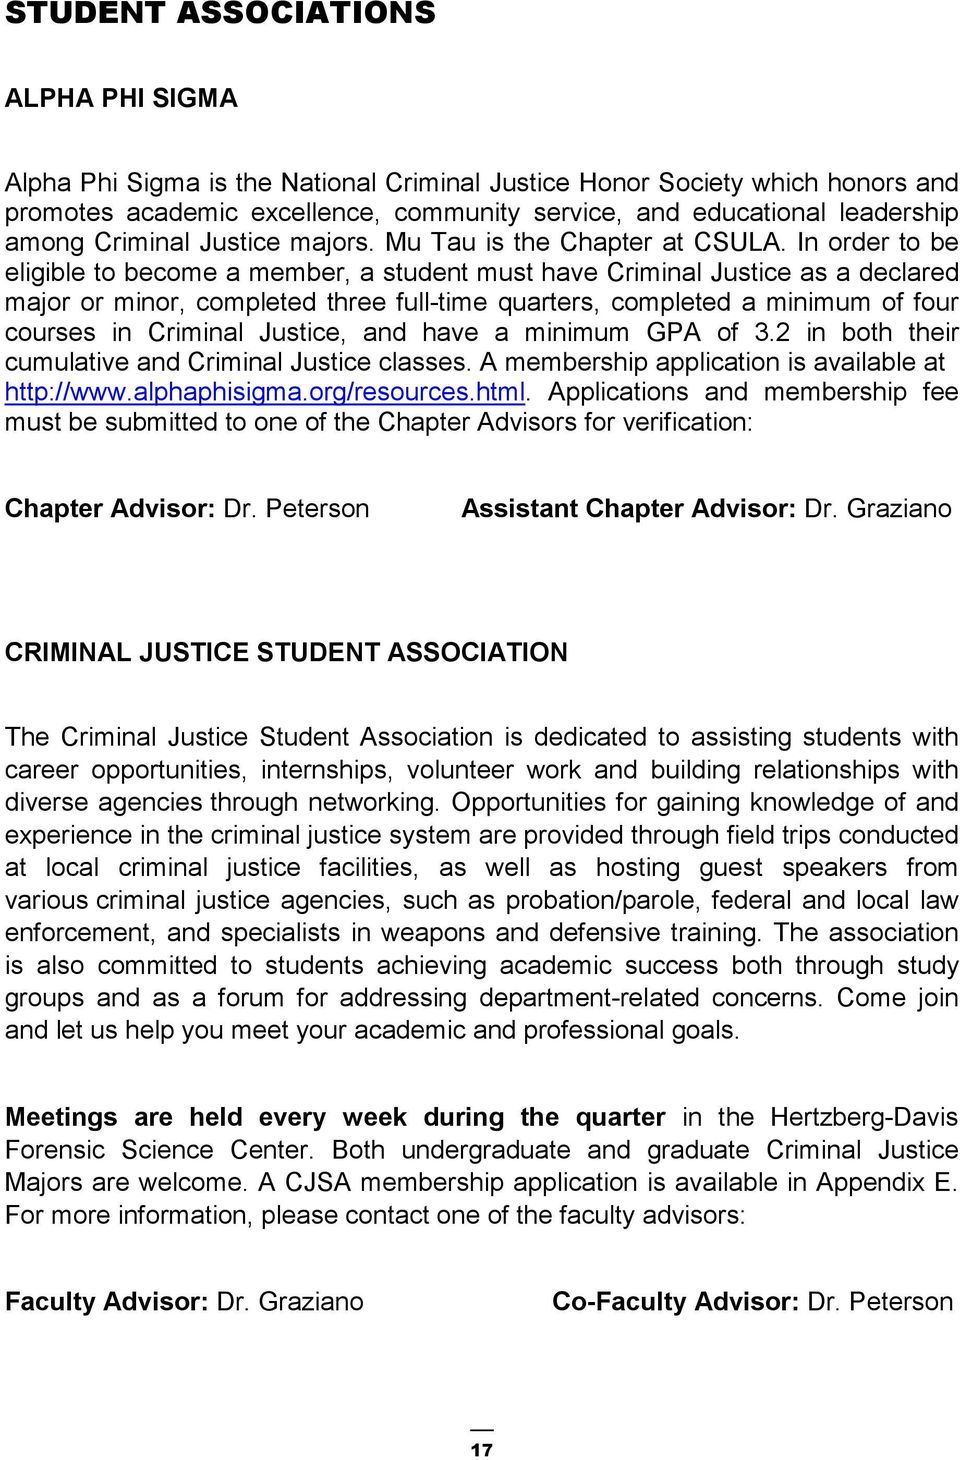 In order to be eligible to become a member, a student must have Criminal Justice as a declared major or minor, completed three full-time quarters, completed a minimum of four courses in Criminal